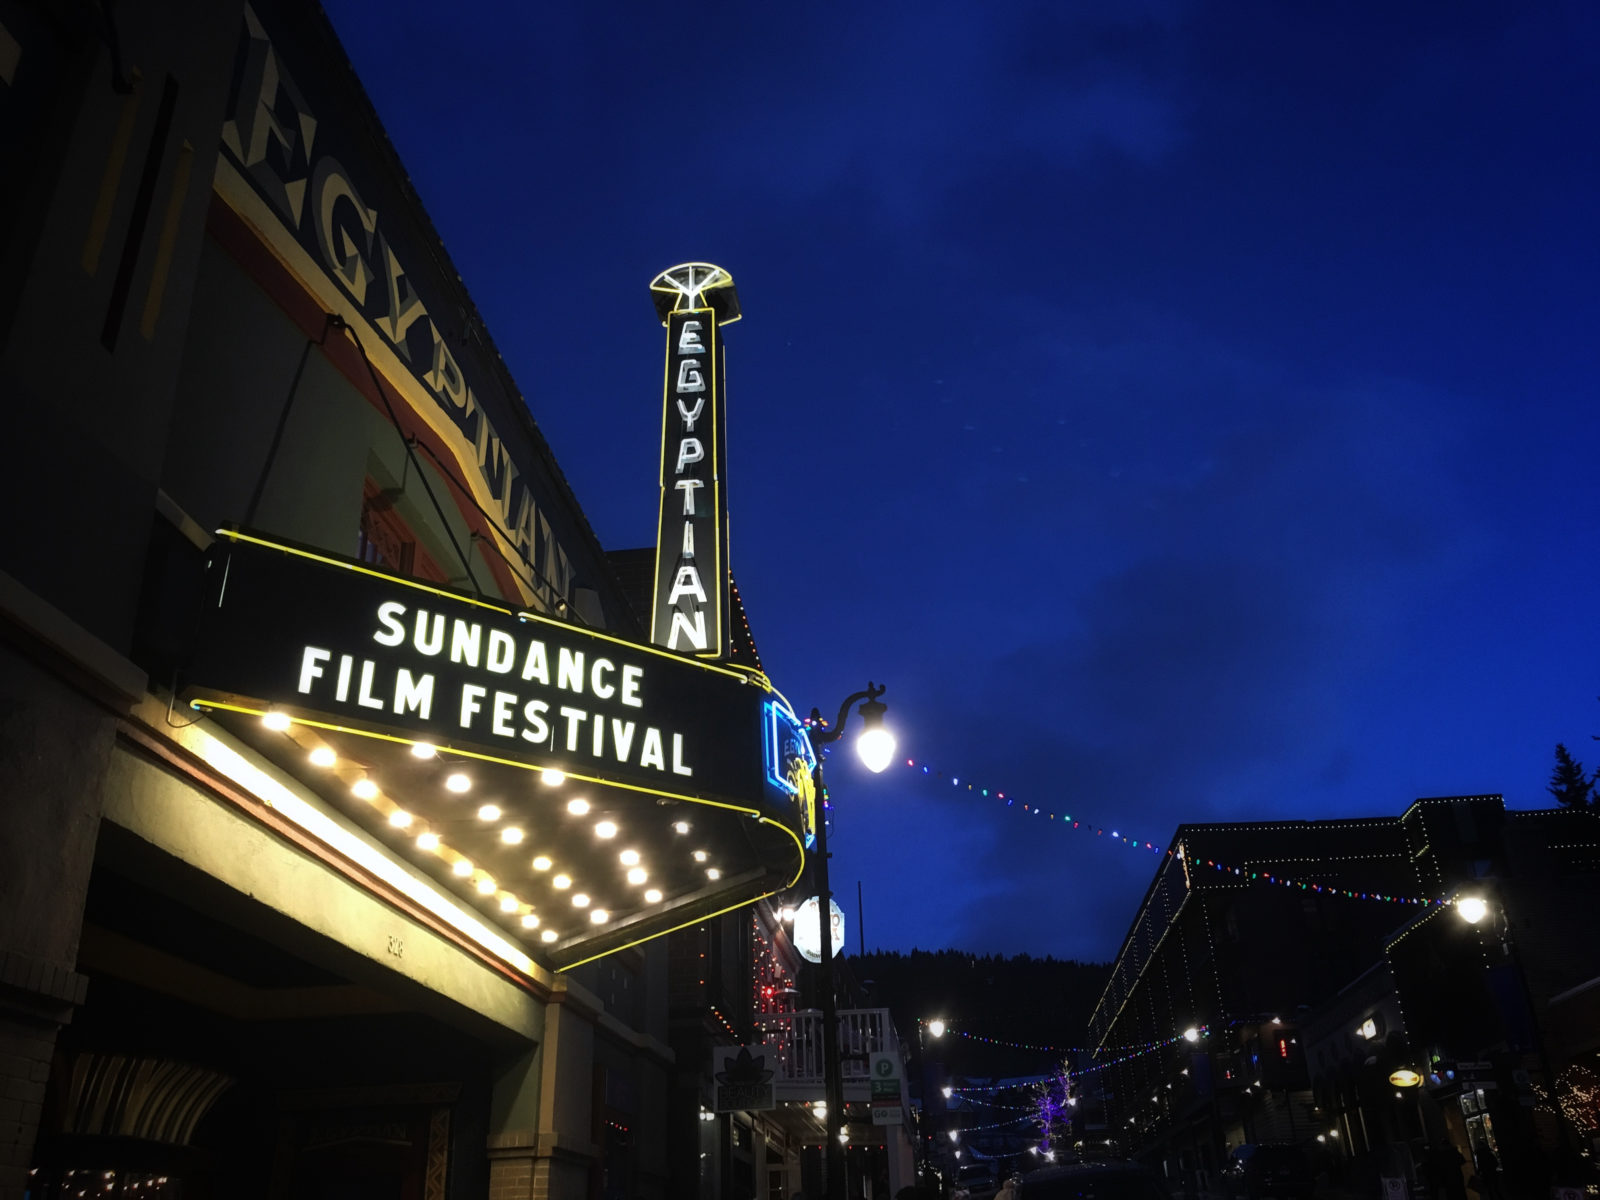 Illuminated marquee at the Sundance Film Festival